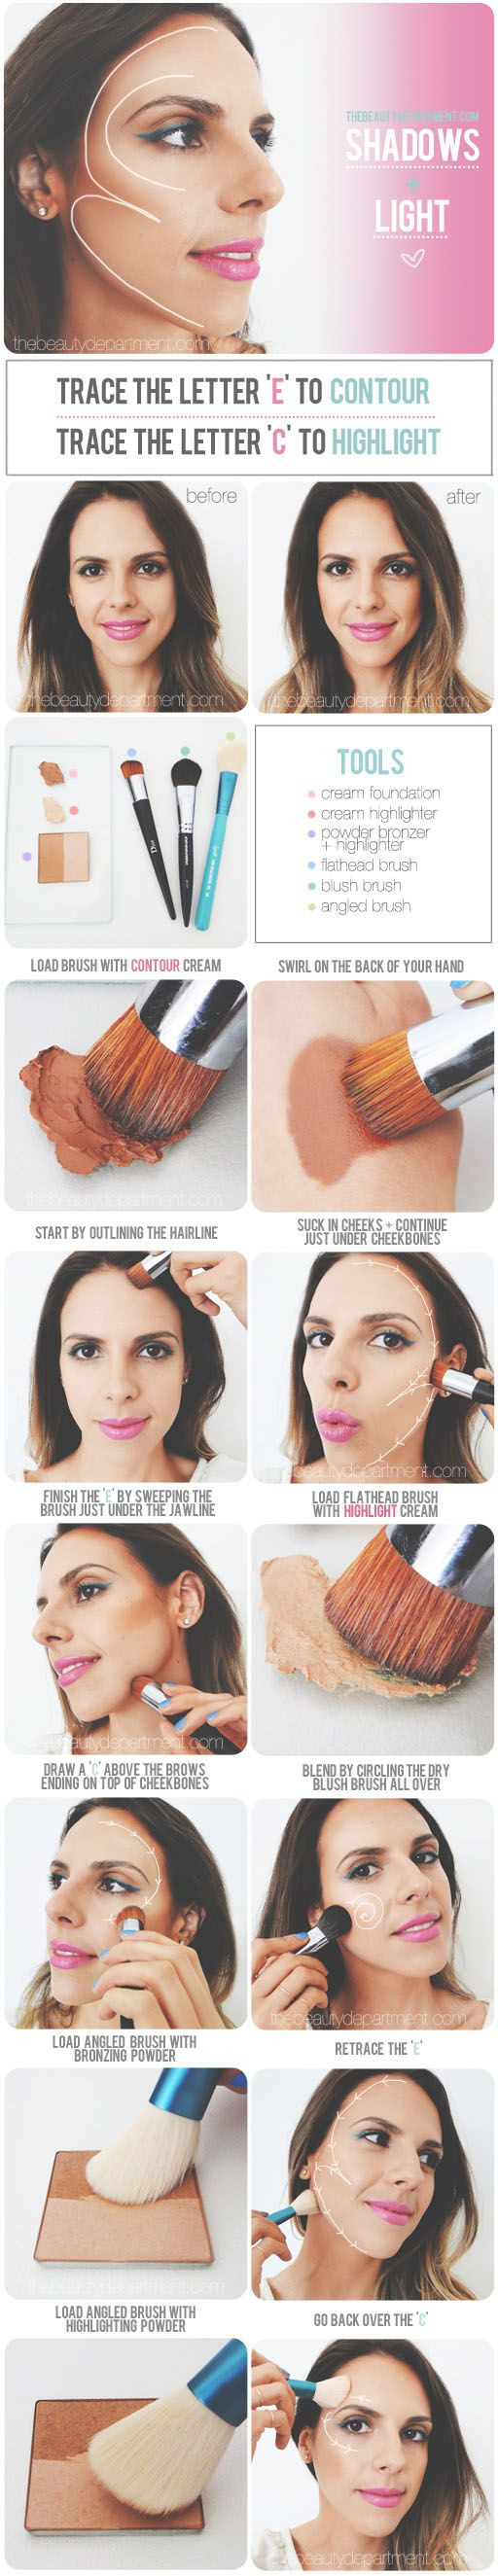 How to Apply Foundation via